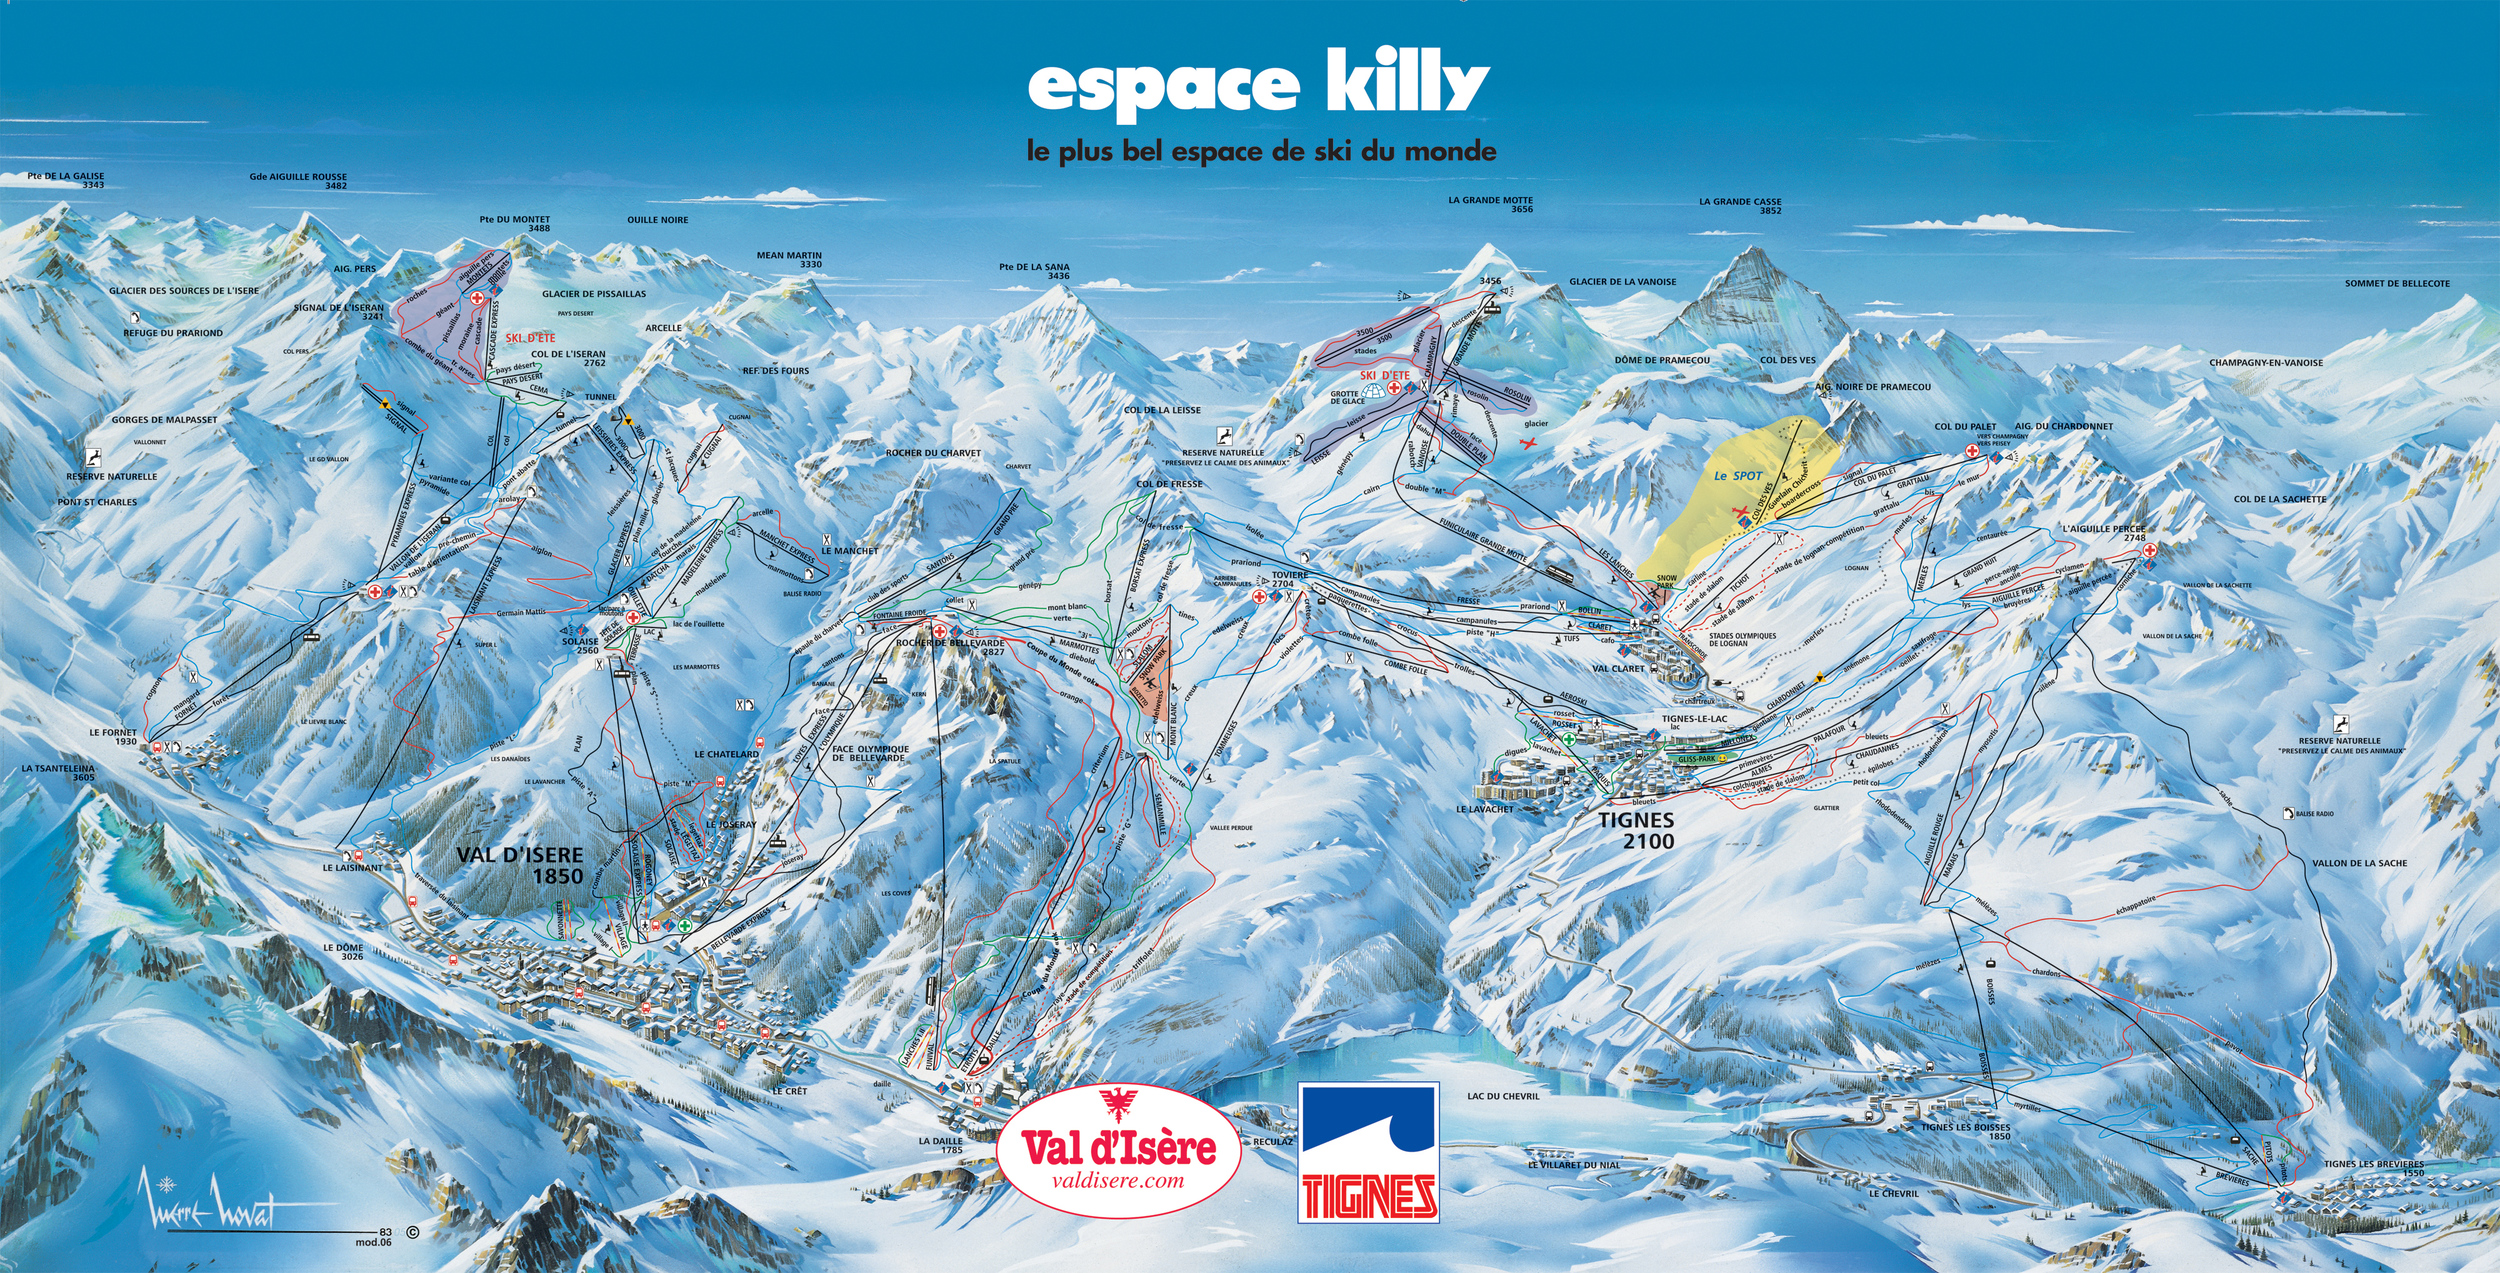 A huge piste map of the area. We're in the lower right corner.